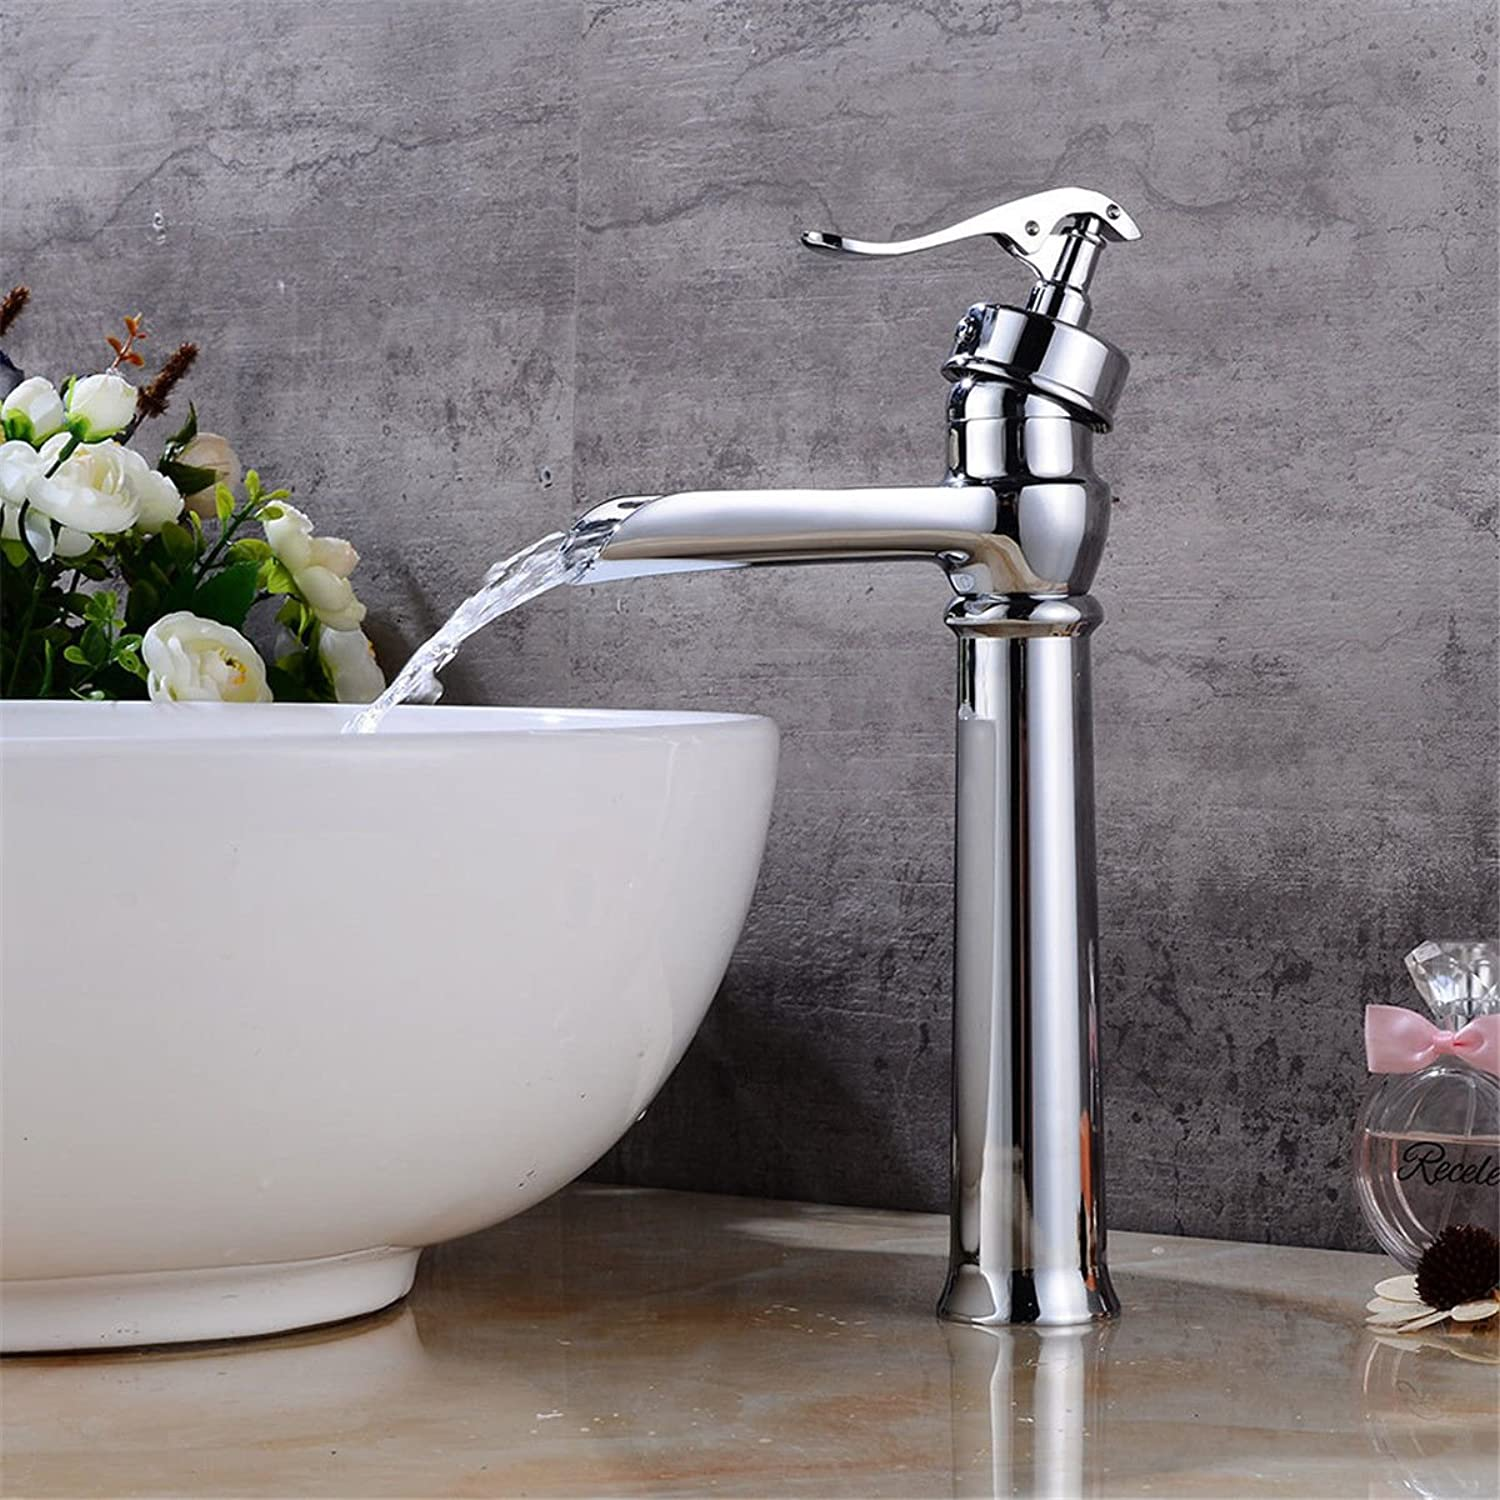 AQMMi Basin Taps Bathroom Sink Faucet Chrome Plated Waterfall Hot and Cold Water Bathroom Sink Faucet Basin Mixer Tap